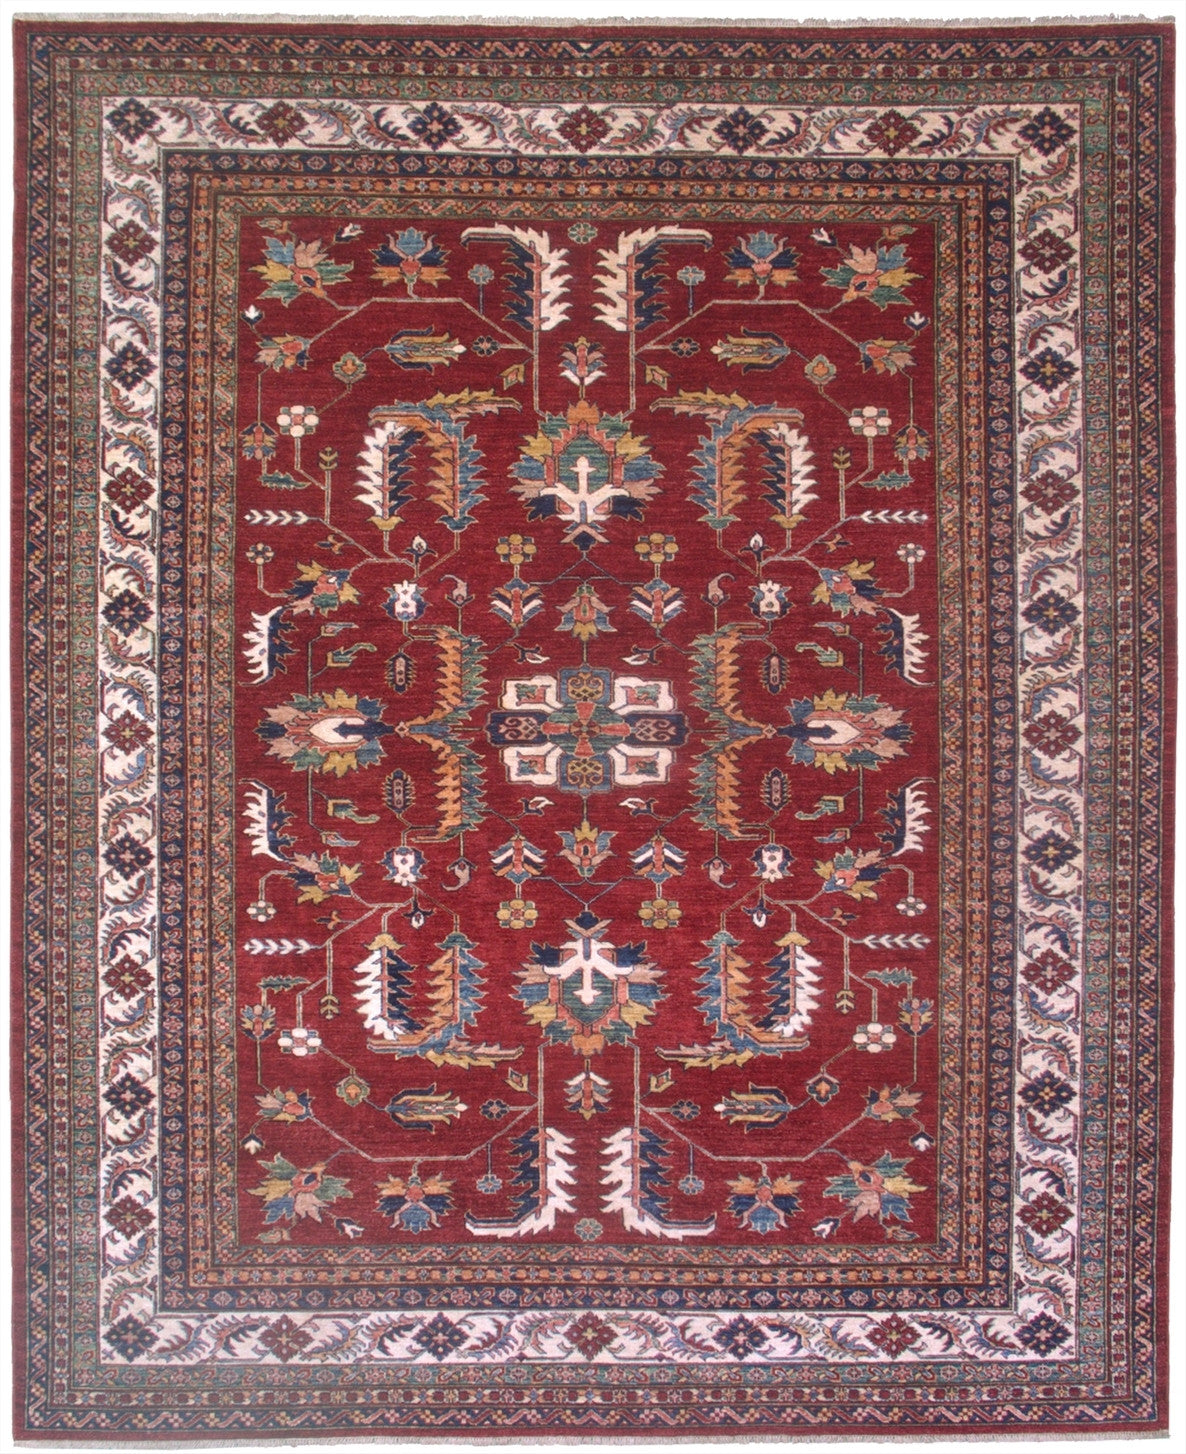 New Pakistan Hand-woven Antique Reproduction of a 19th Century Caucasian Kazak Rug   SOLD